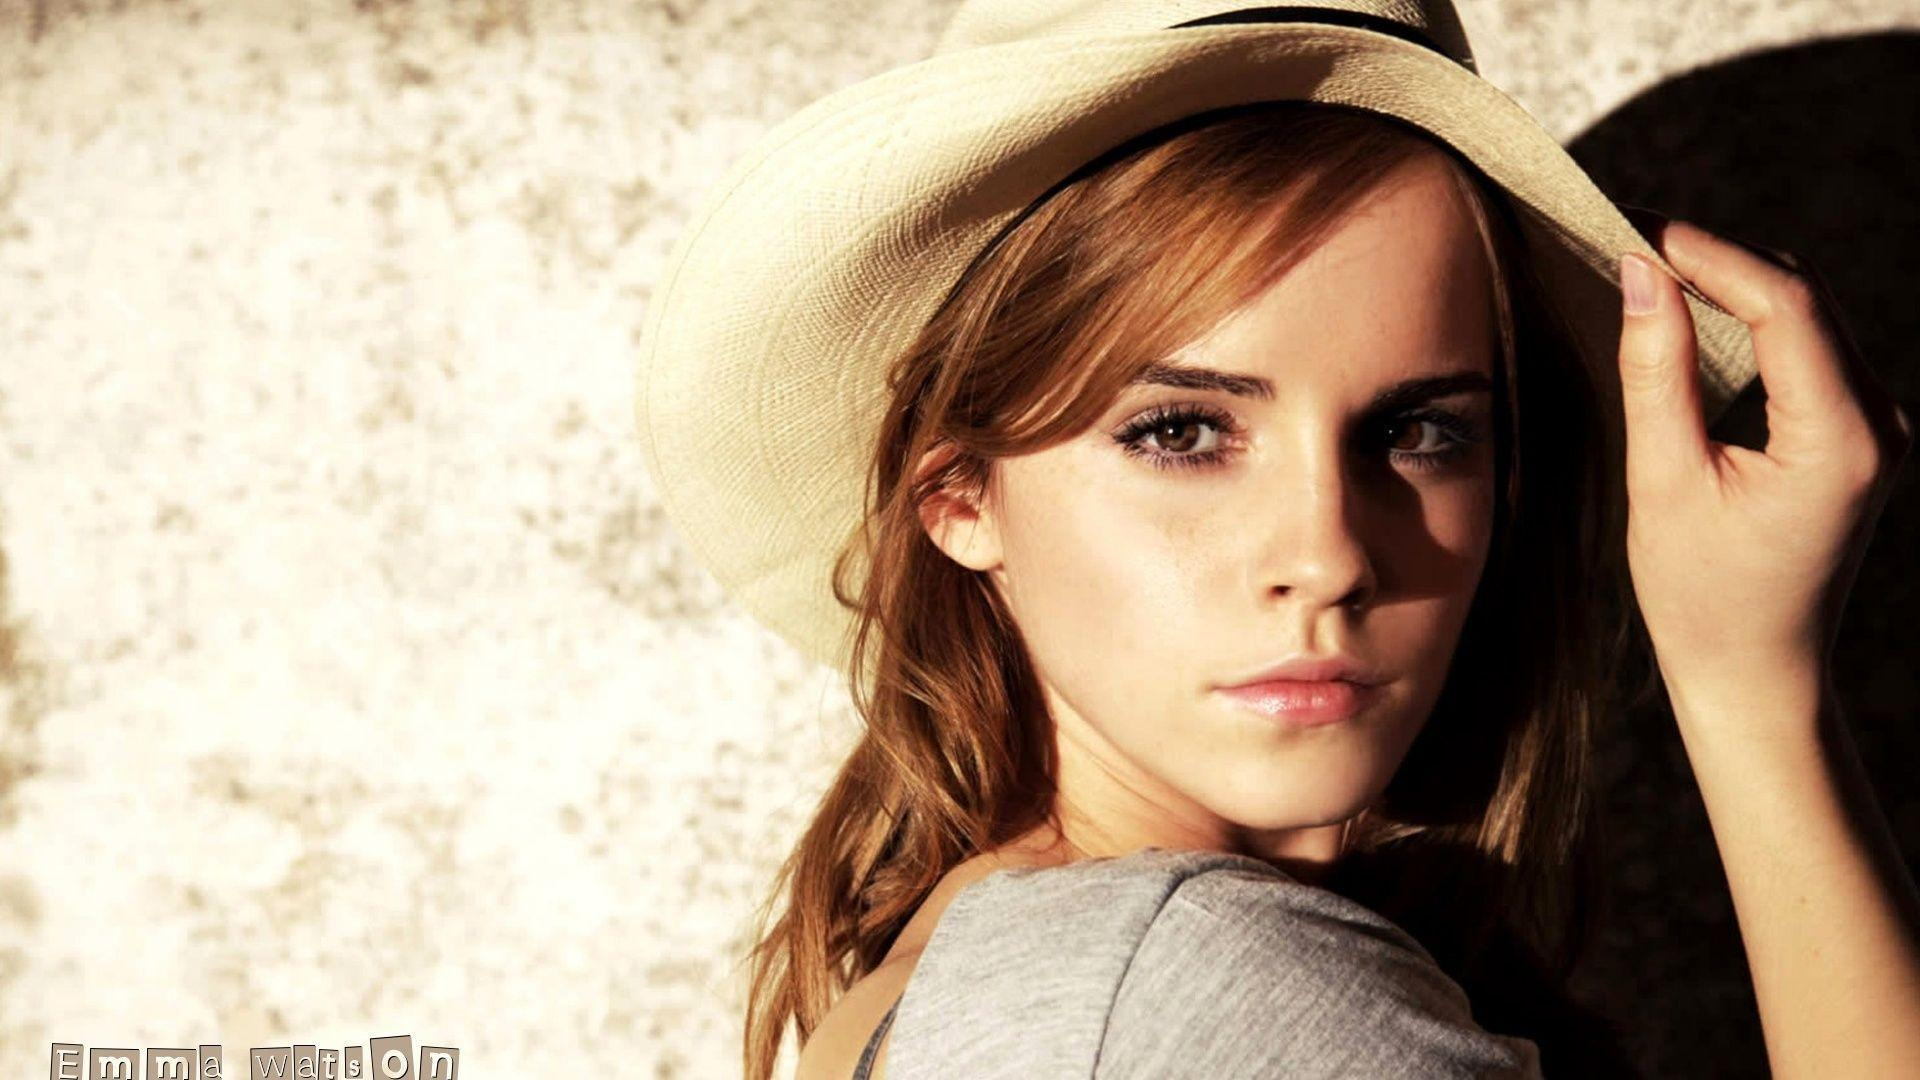 Image For > Emma Watson Wallpapers Hd 1080p